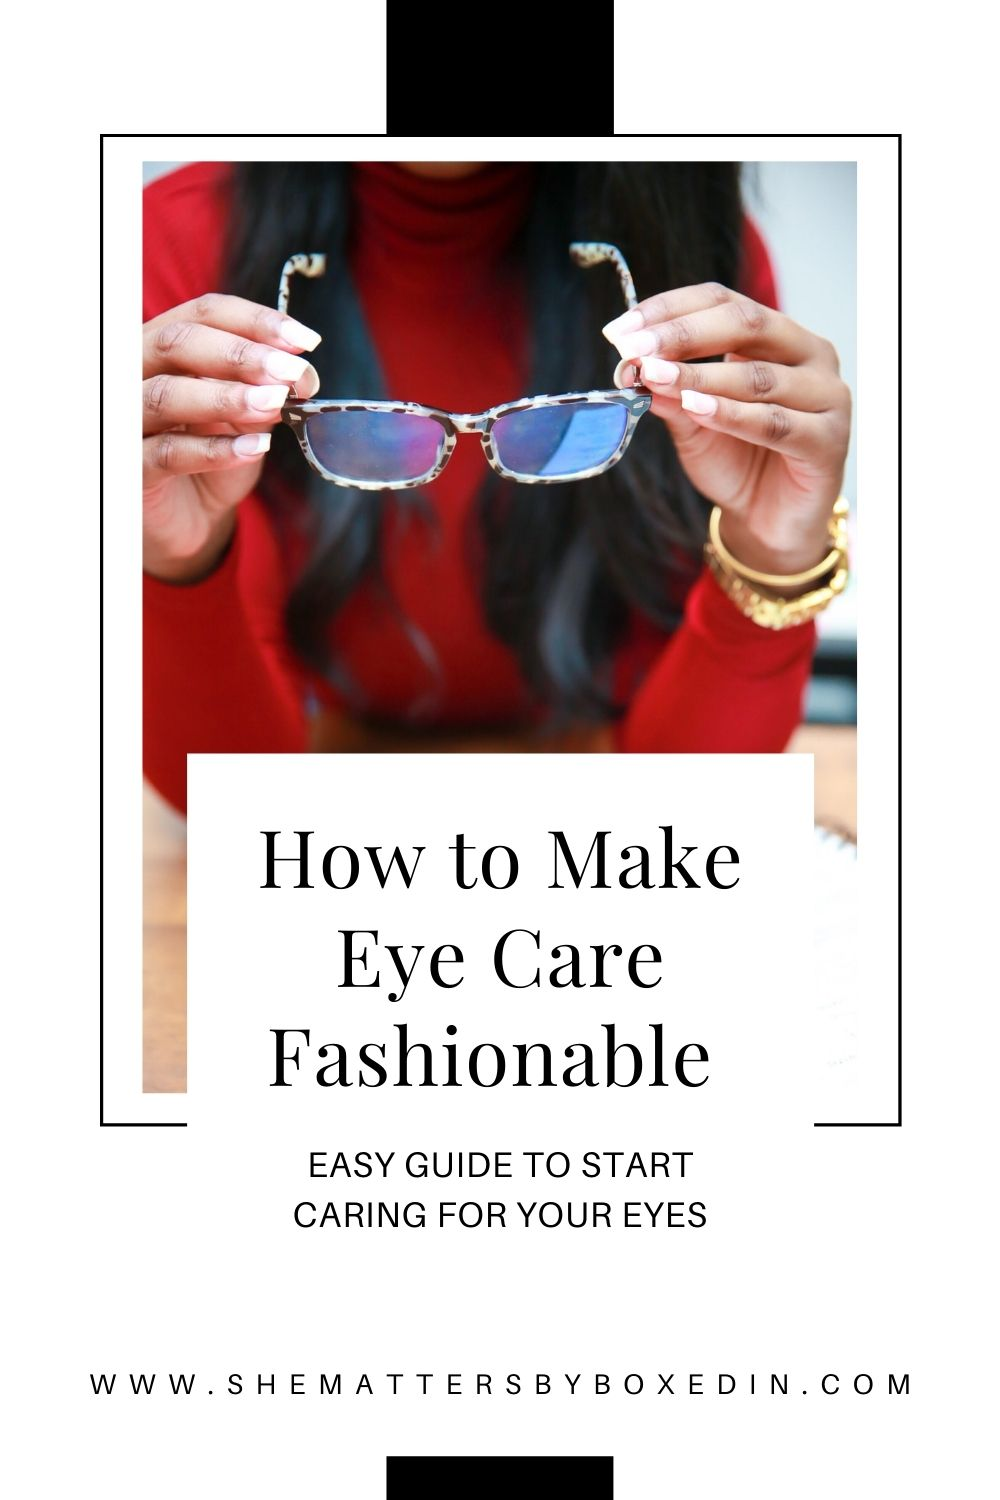 How To Make Eye Care, Fashionable!